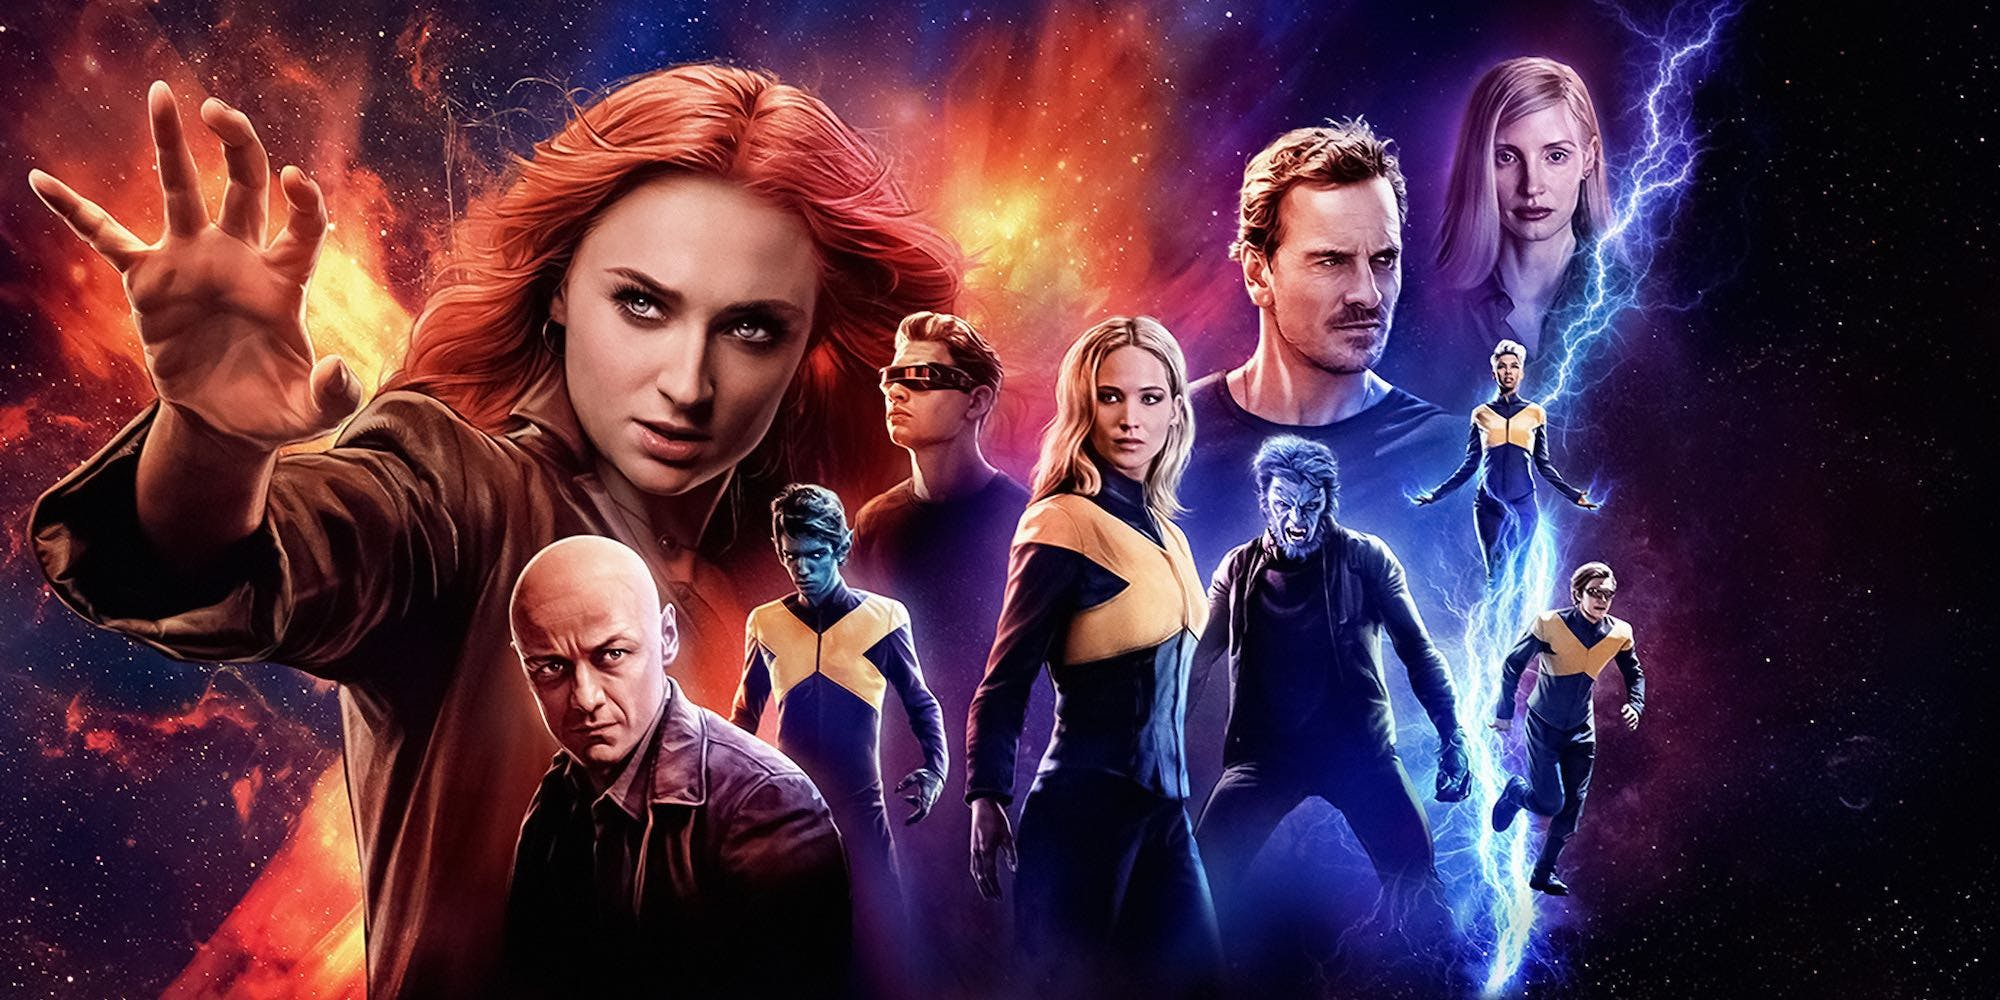 Chris Claremont Throws Shade at Fox's X-Men Movies- What's the reason behind this?